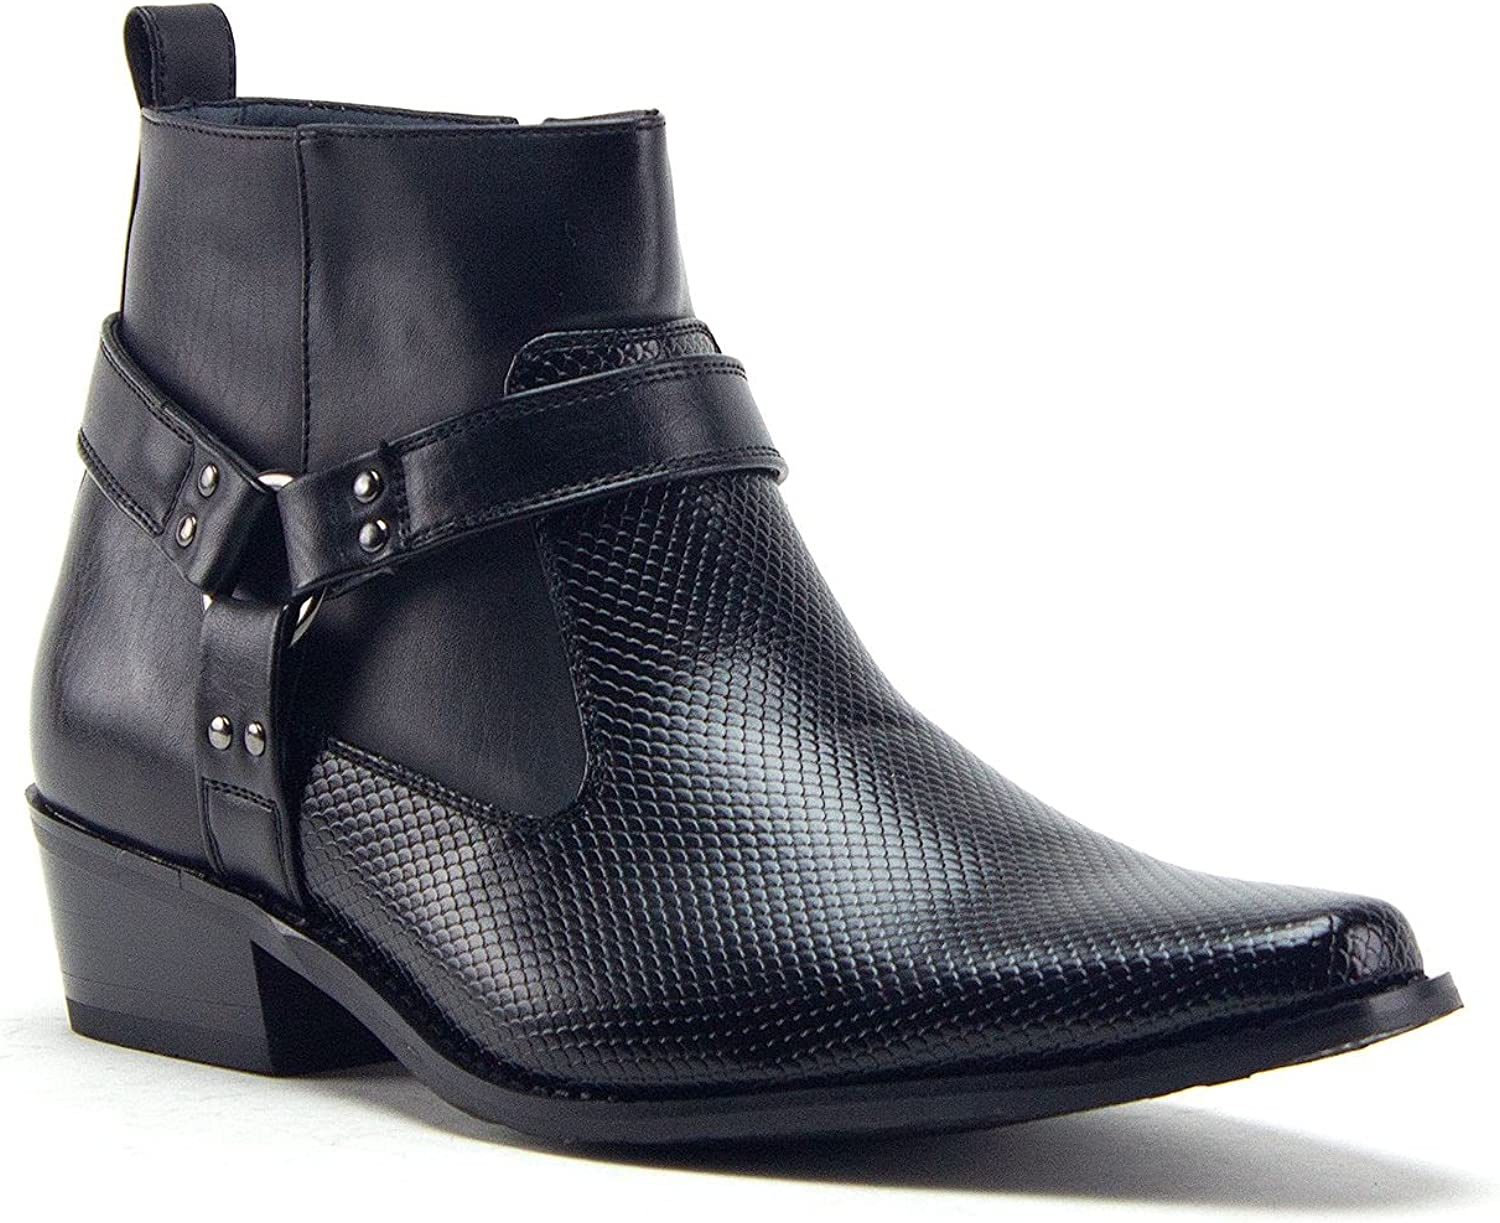 Men's 40126 security Leather Lined specialty shop Tall Cowboy Style Boots Dress Western